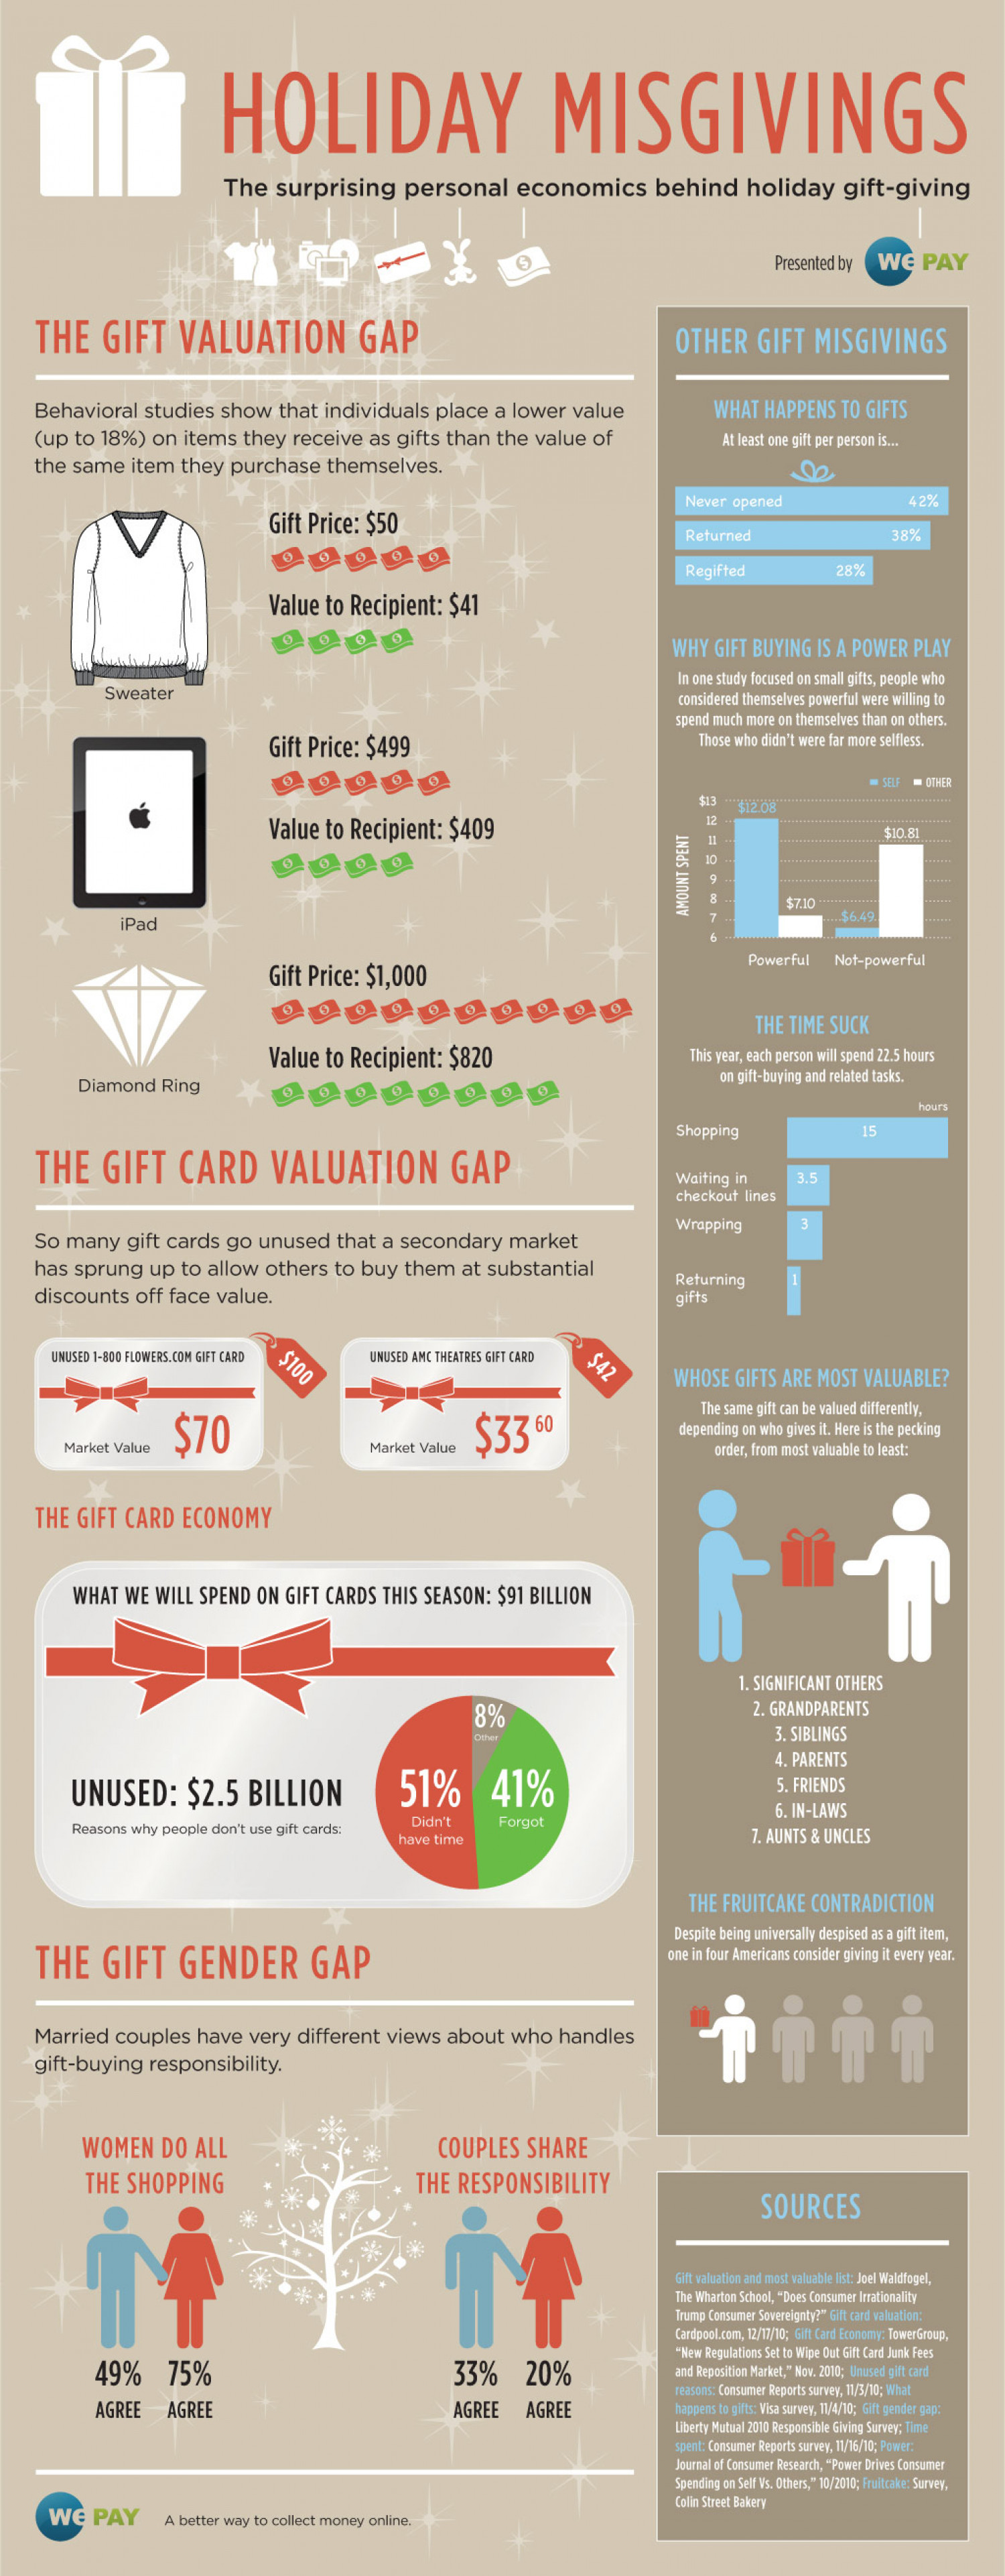 Holiday Misgivings Infographic